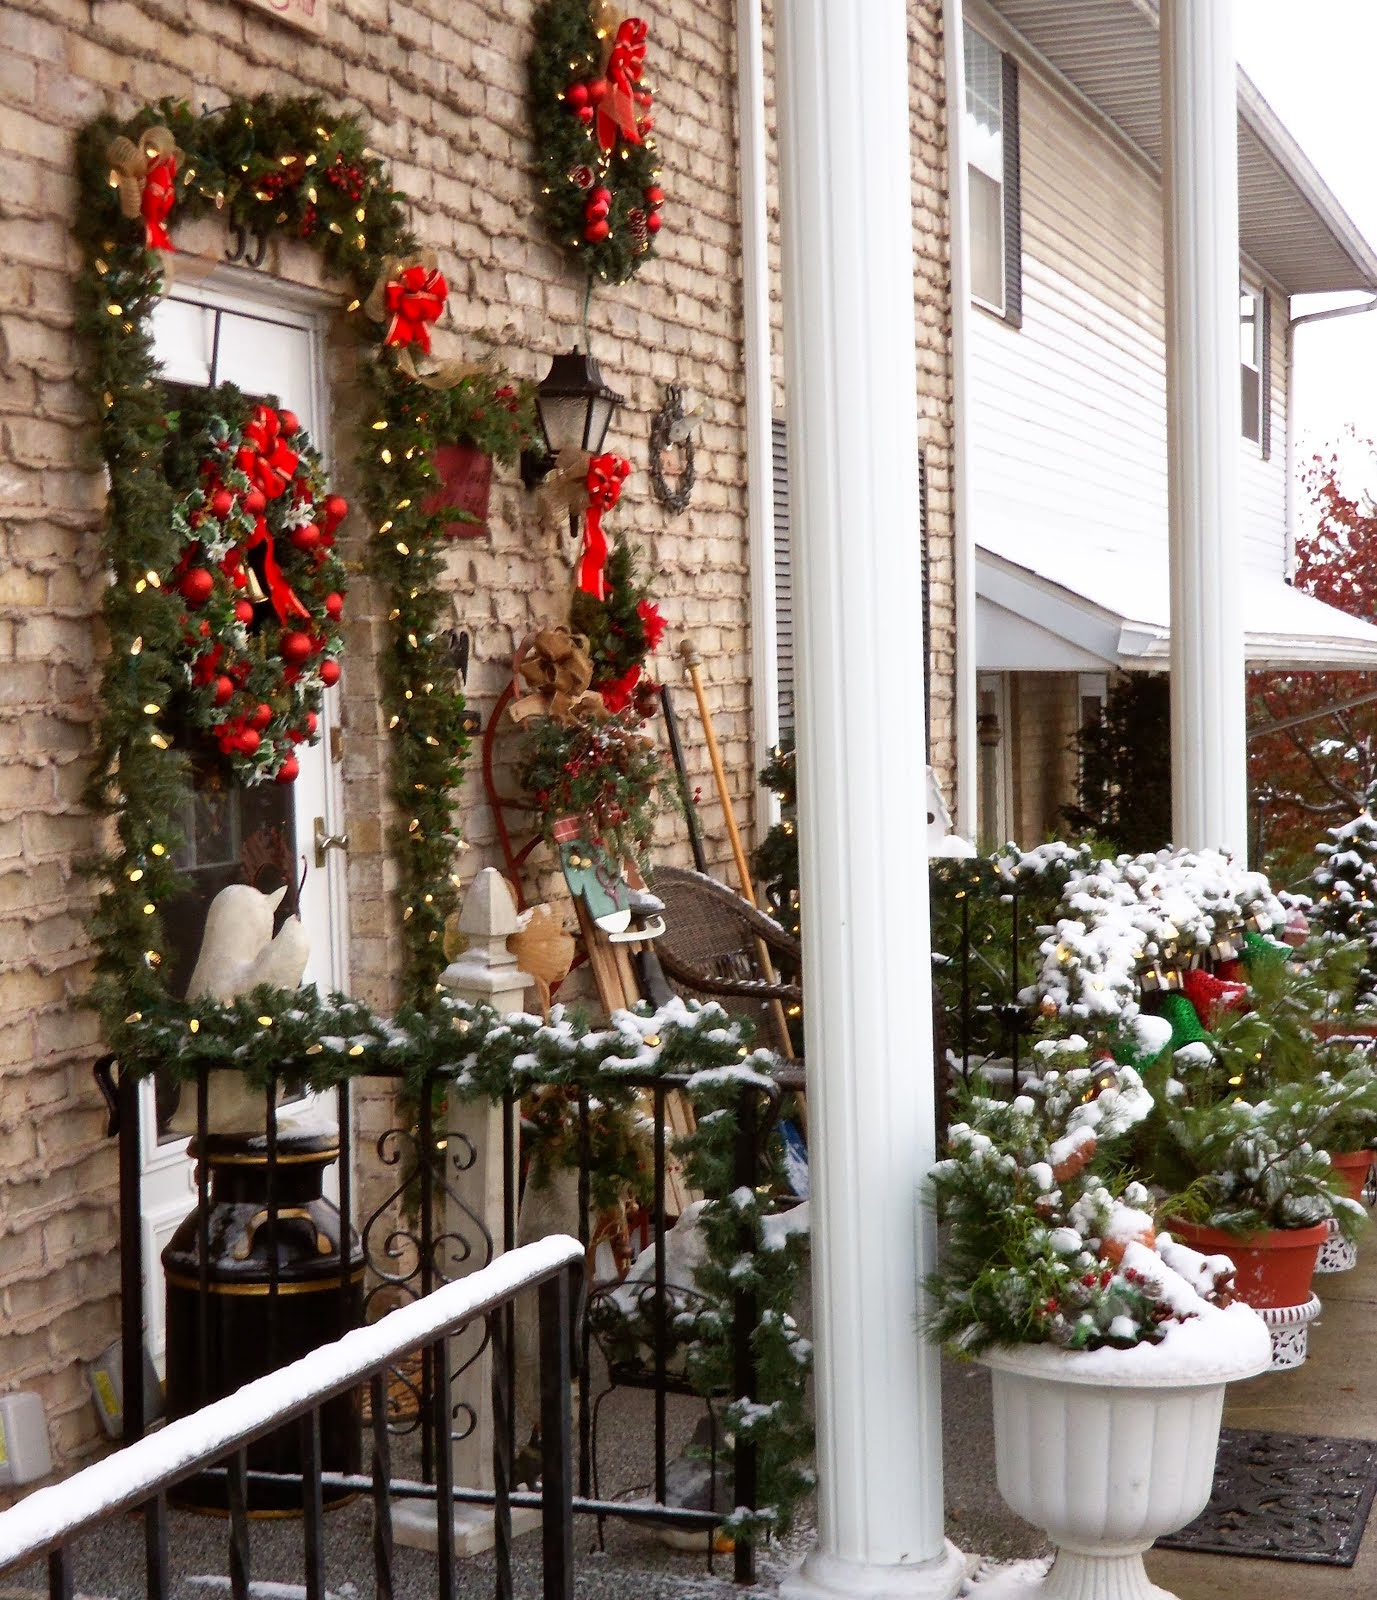 Christmas Home Tour 2013: The Outside of Our Home